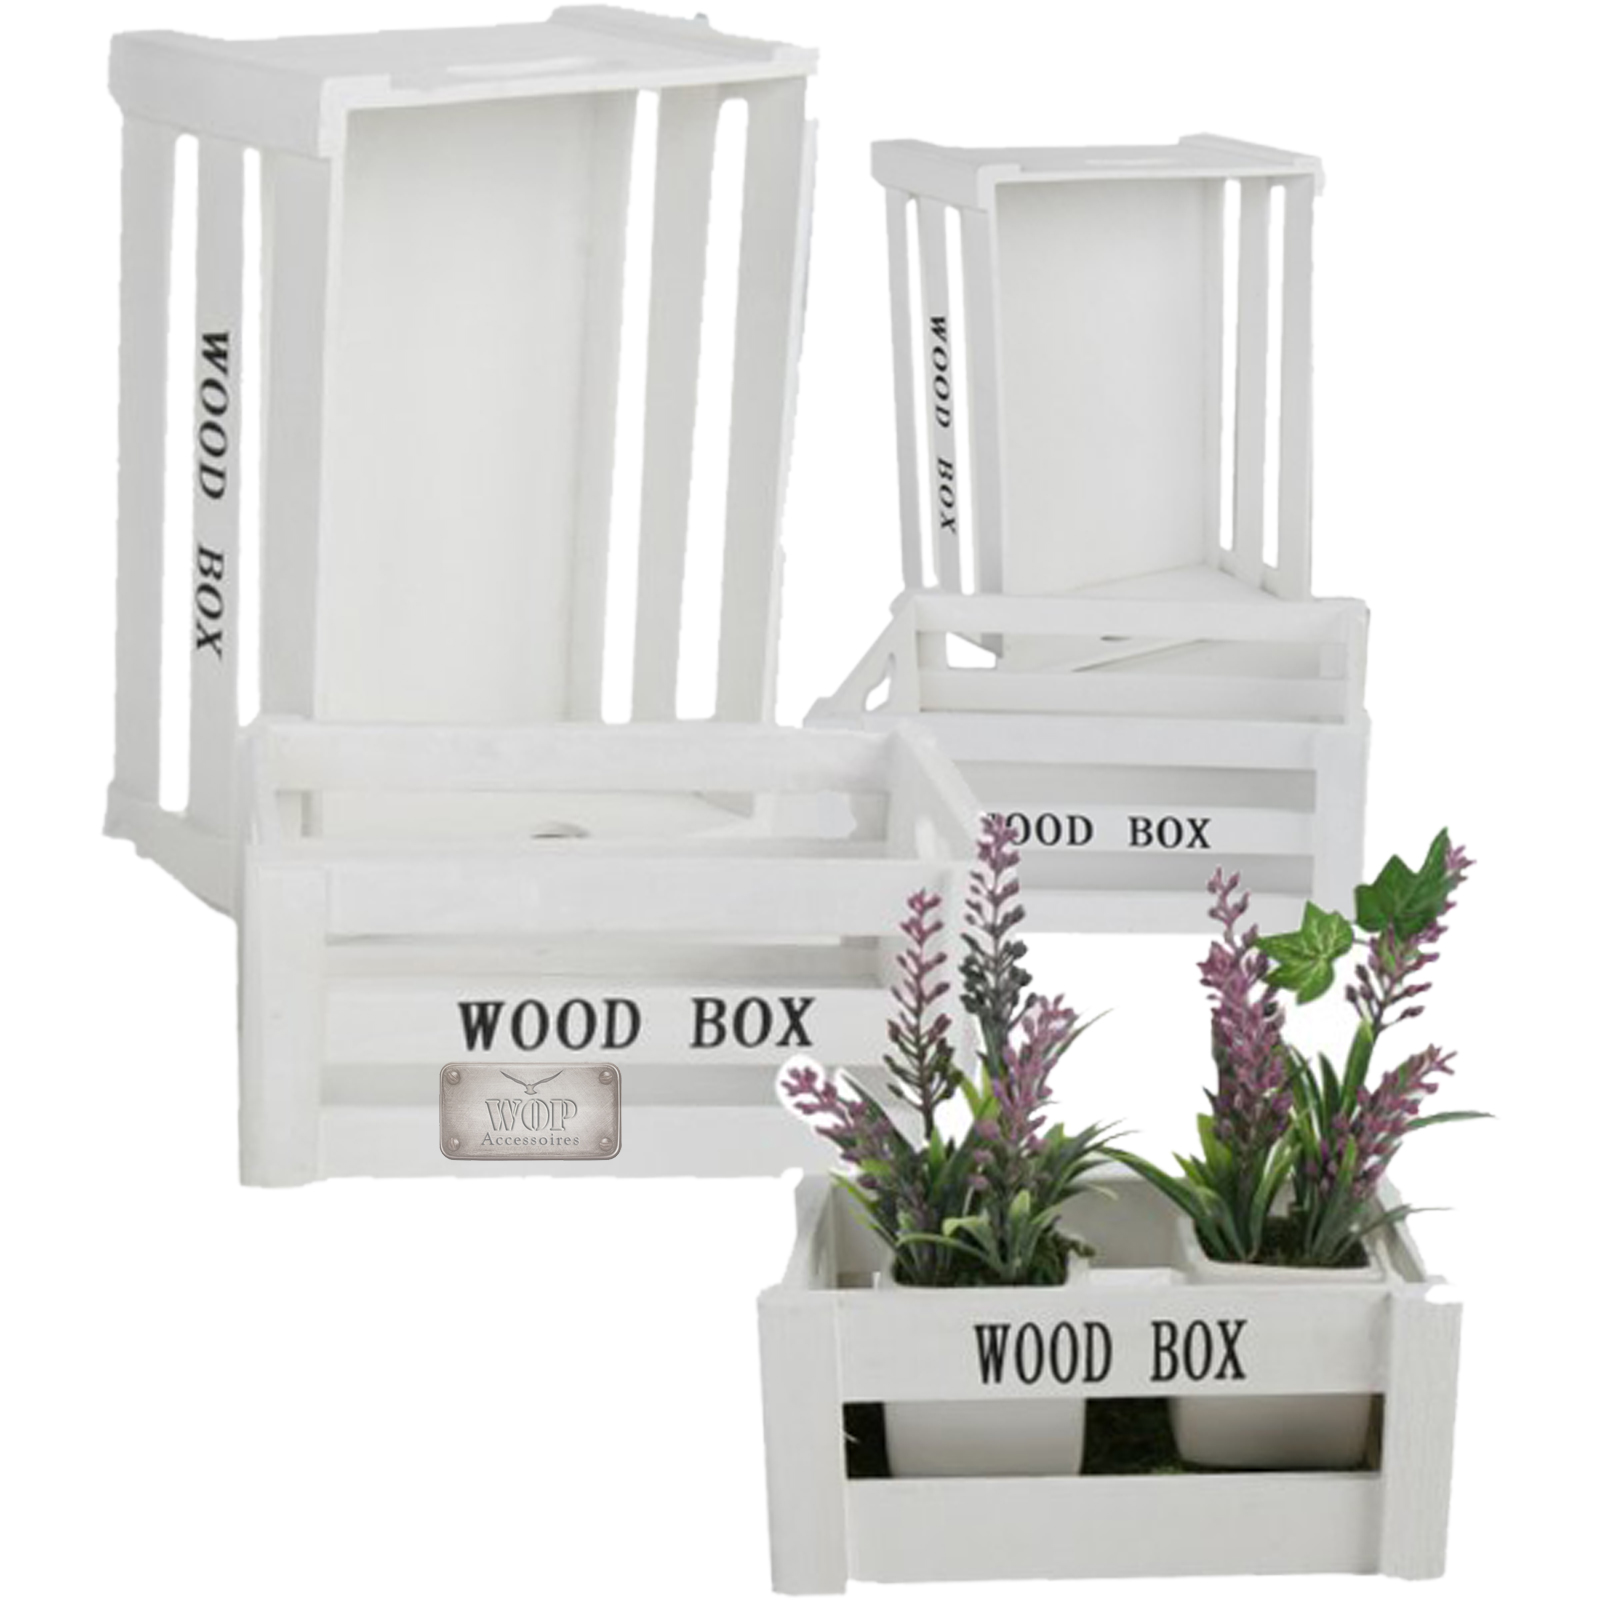 holzkiste weinkiste holzbox 5er set kiste deko aufbewahrungsbox box ebay. Black Bedroom Furniture Sets. Home Design Ideas